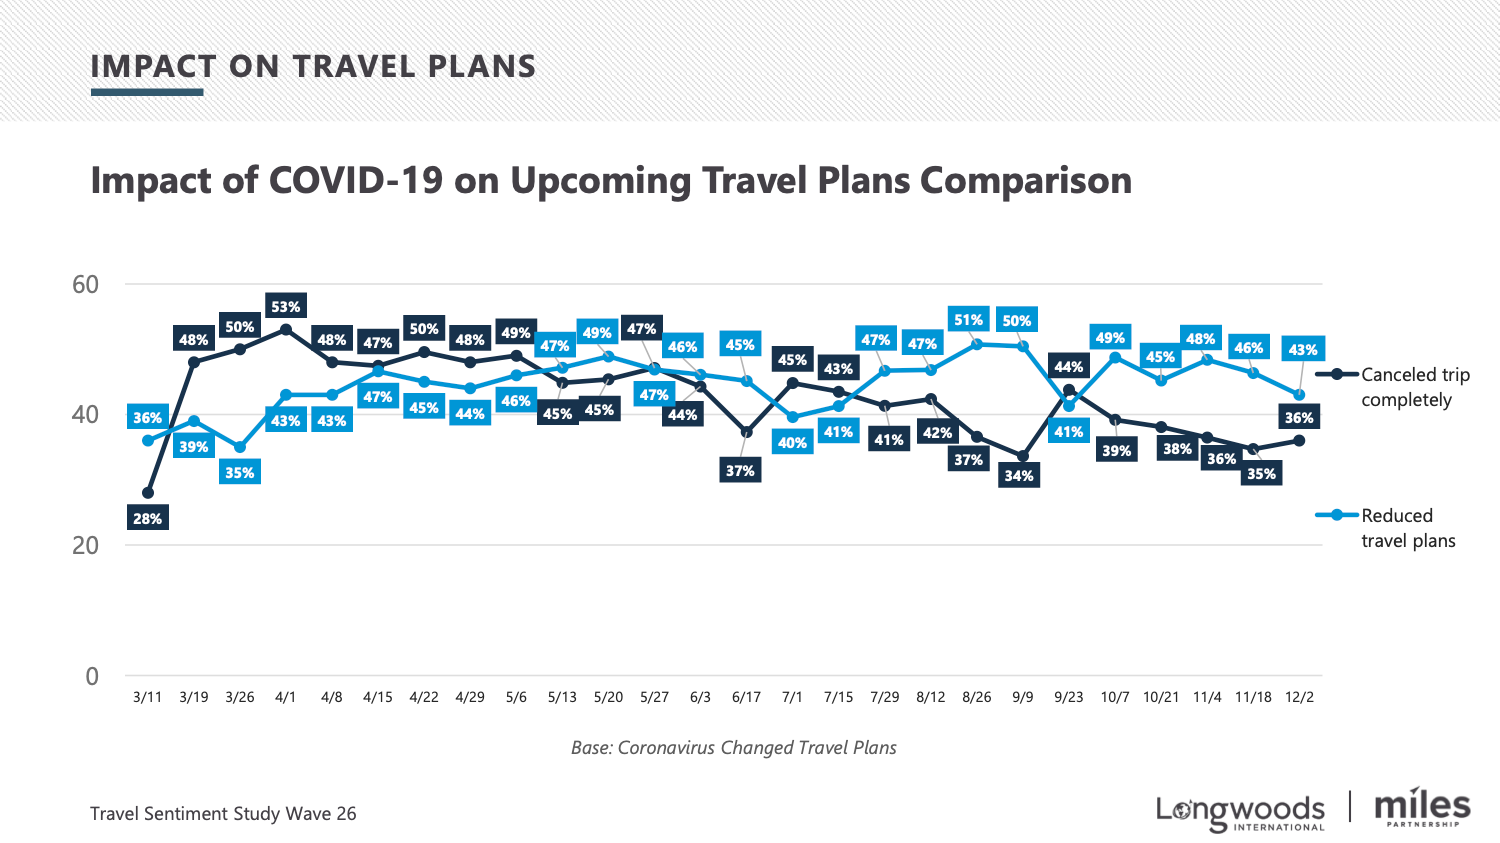 Impact on Travel Plans Over Time